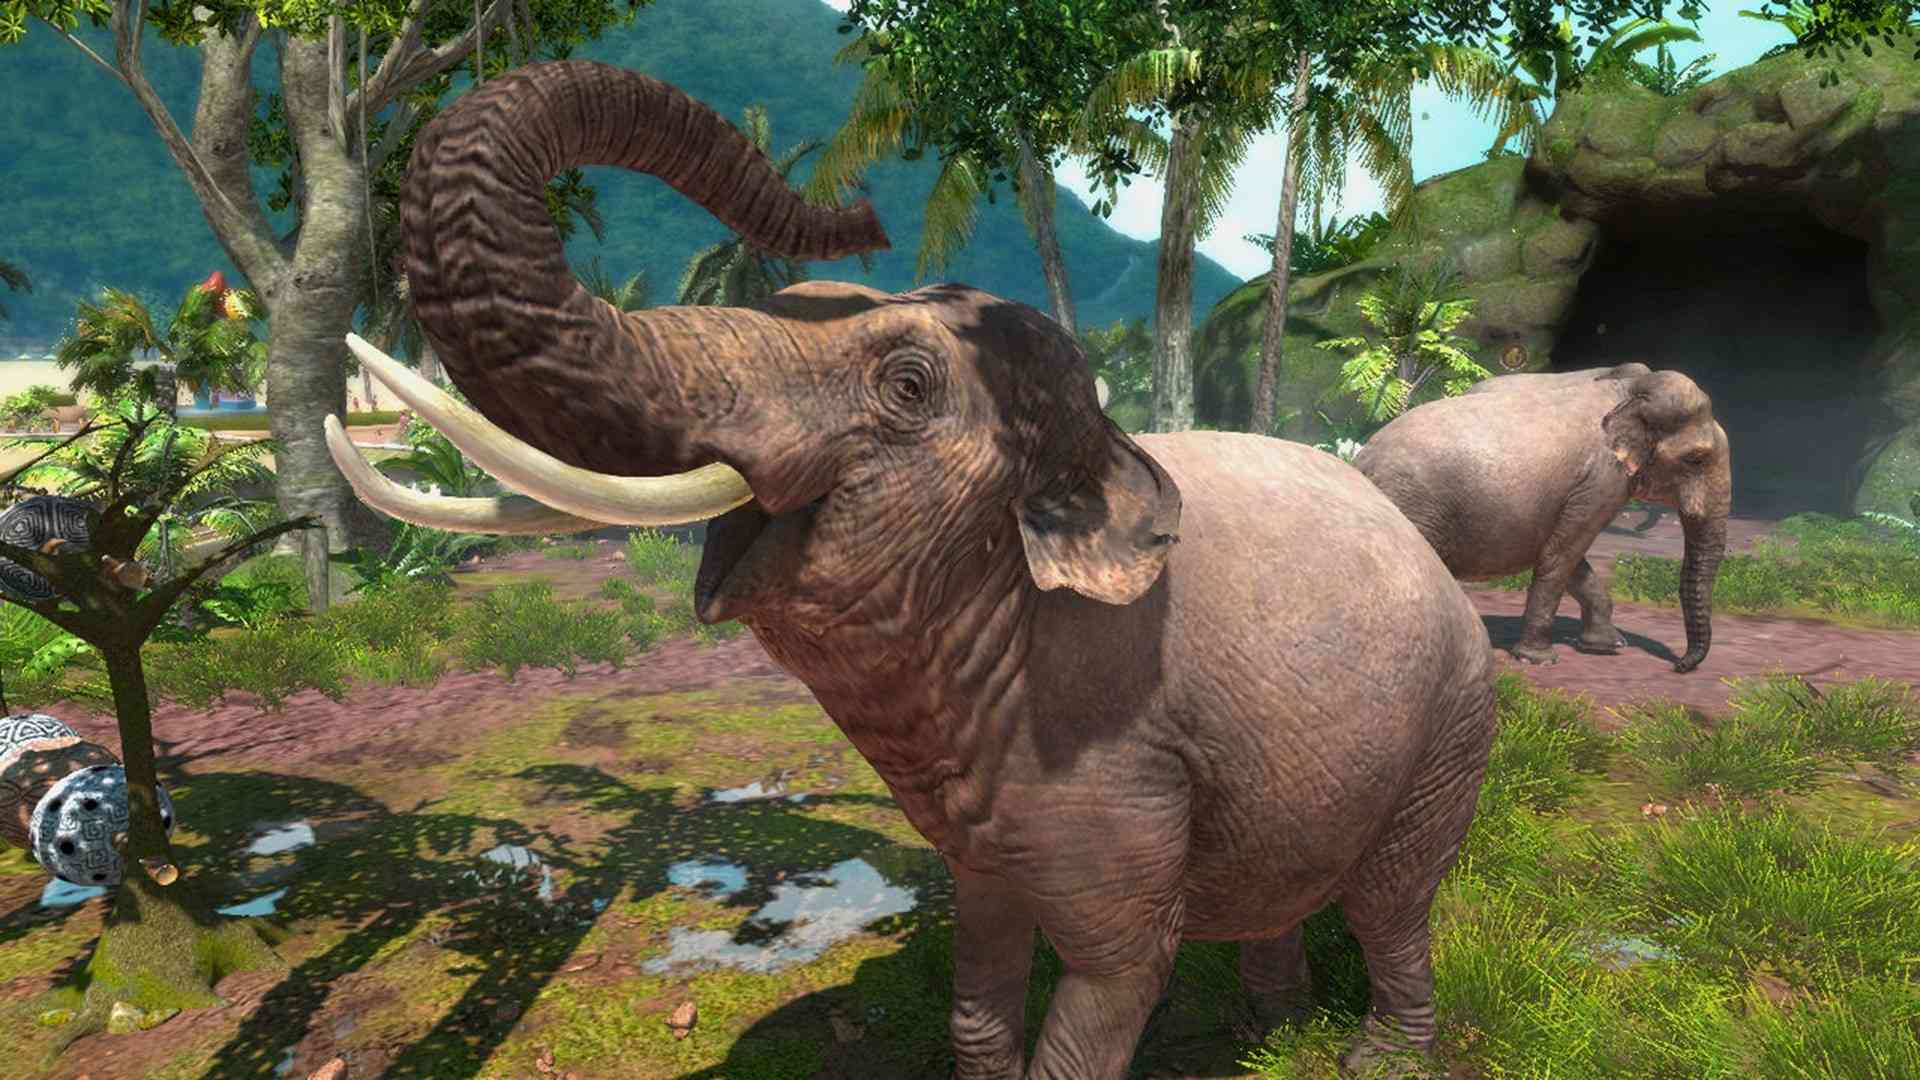 Canadian Online Gamers 187 Zoo Tycoon Xbox One Review Playing With The Animals Can Be Fun